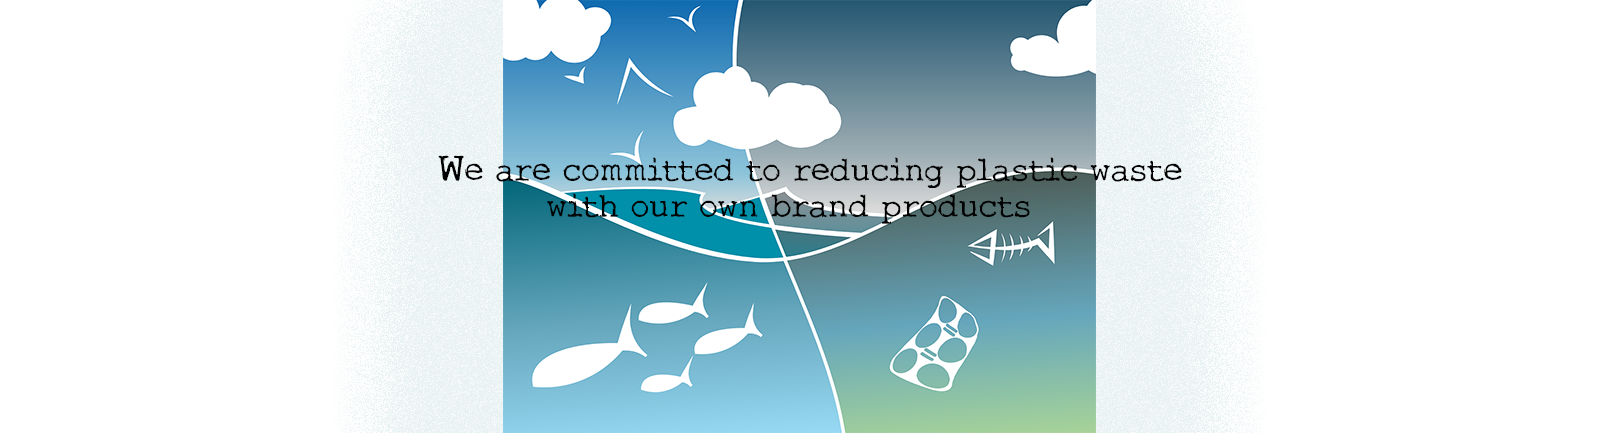 We are reducing plastic waste | Find out more